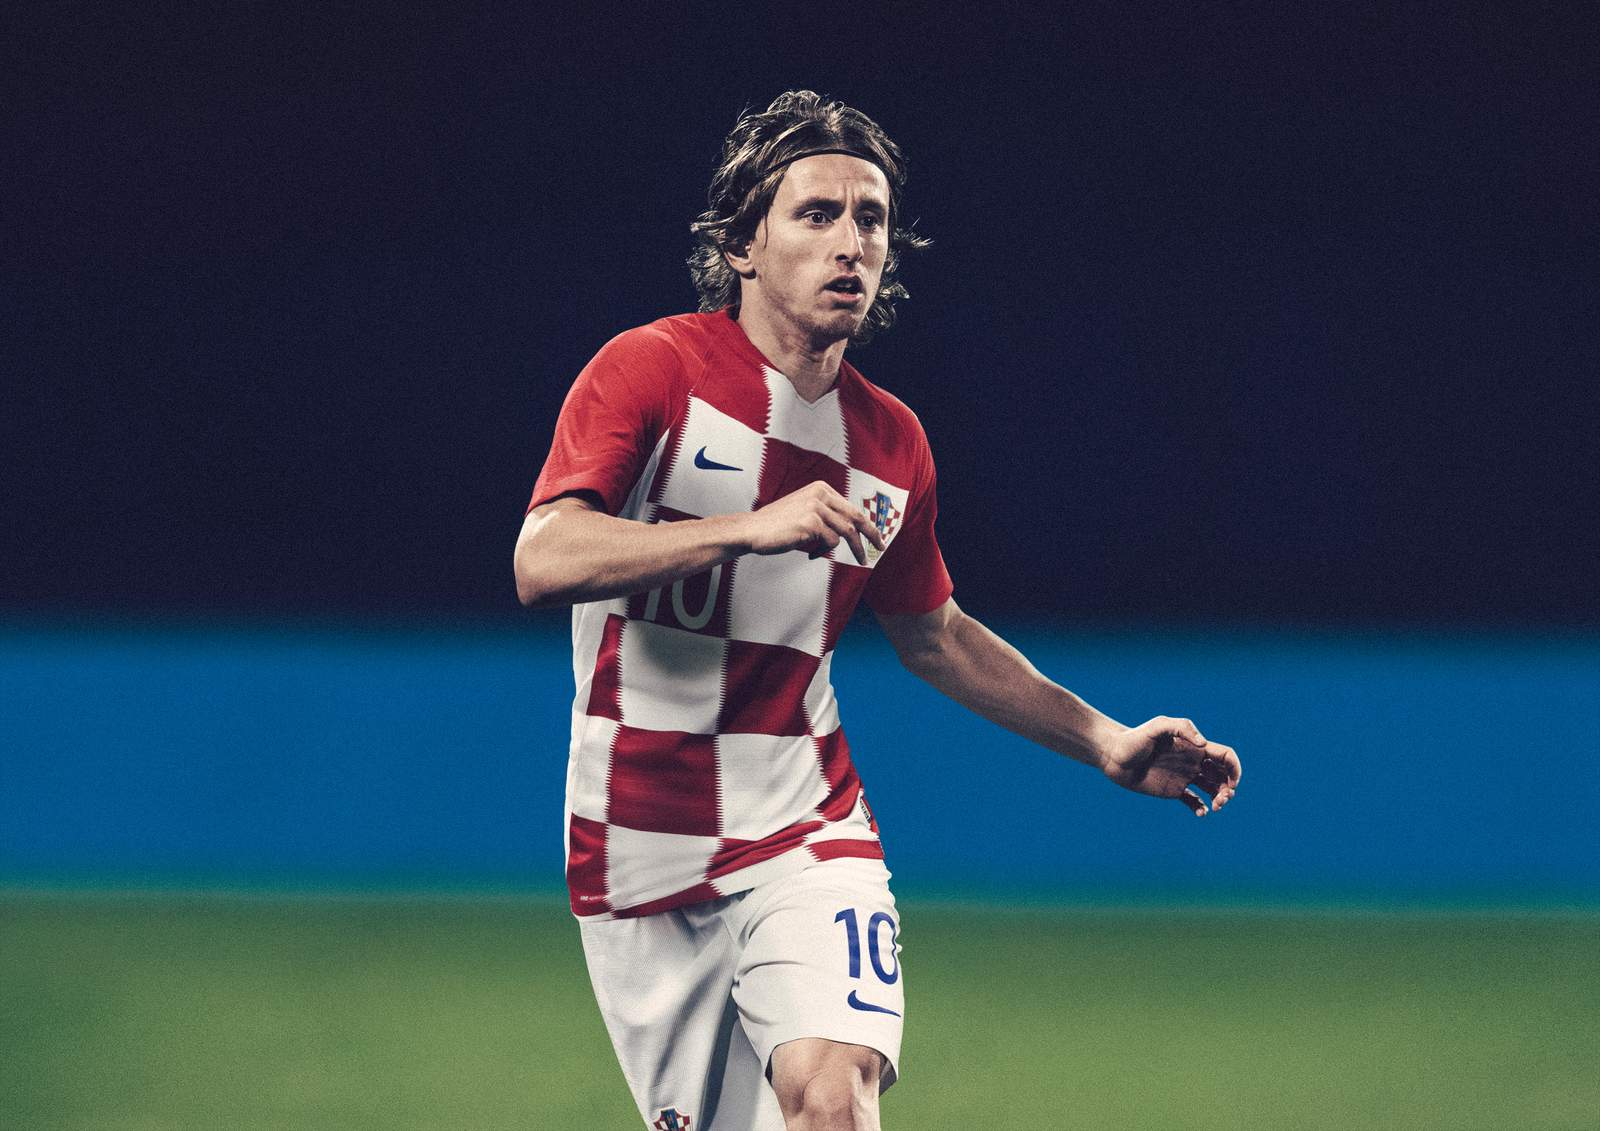 fcb19db12 White shorts and blue socks are expected to complete the Croatia 2018 World  Cup kit.